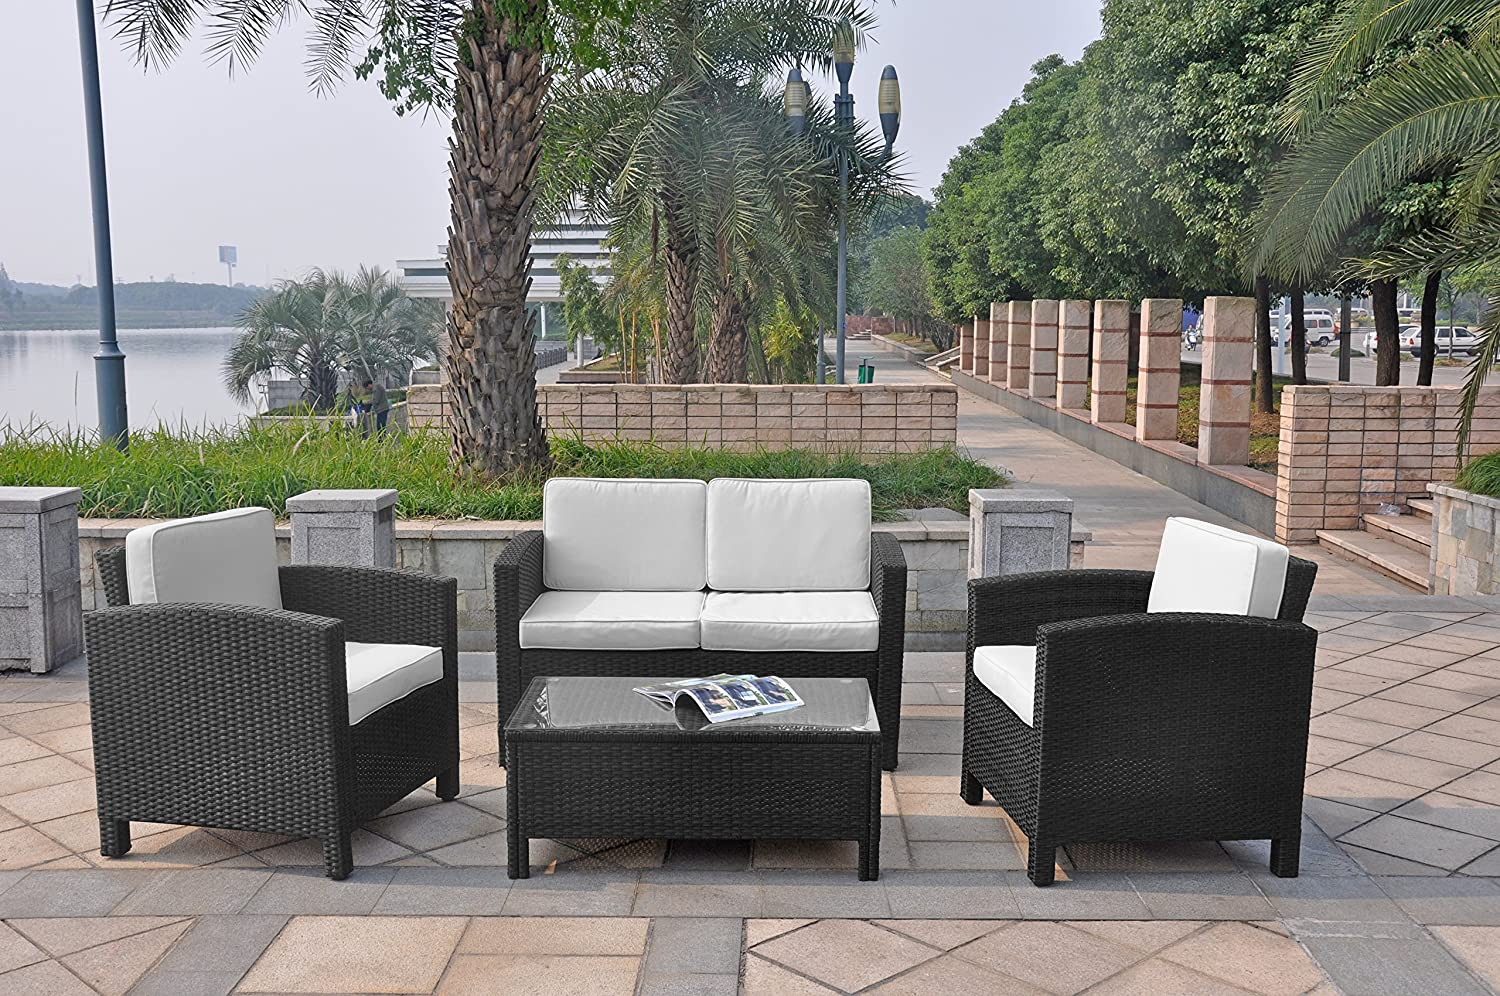 xinro 13tlg deluxe lounge m bel set gruppe garnitur gartenm bel lounge set rattan polyrattan. Black Bedroom Furniture Sets. Home Design Ideas